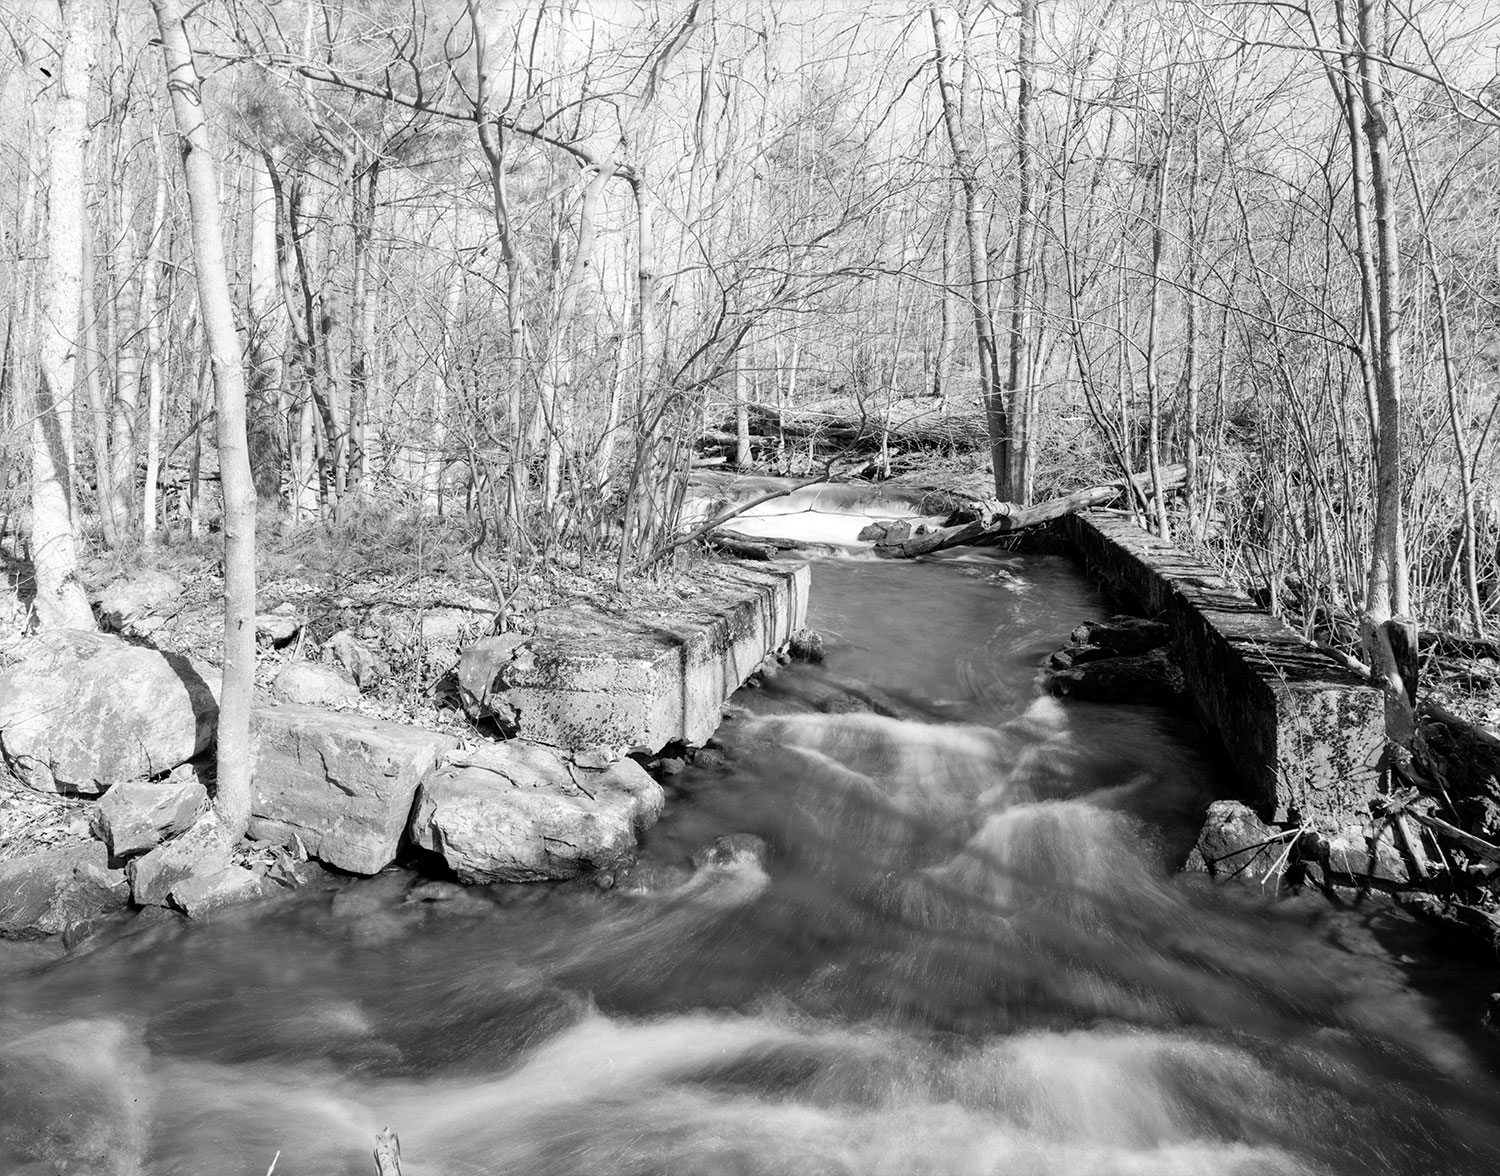 Early 19th Century Up and Down Sawmill » Halfway Brook